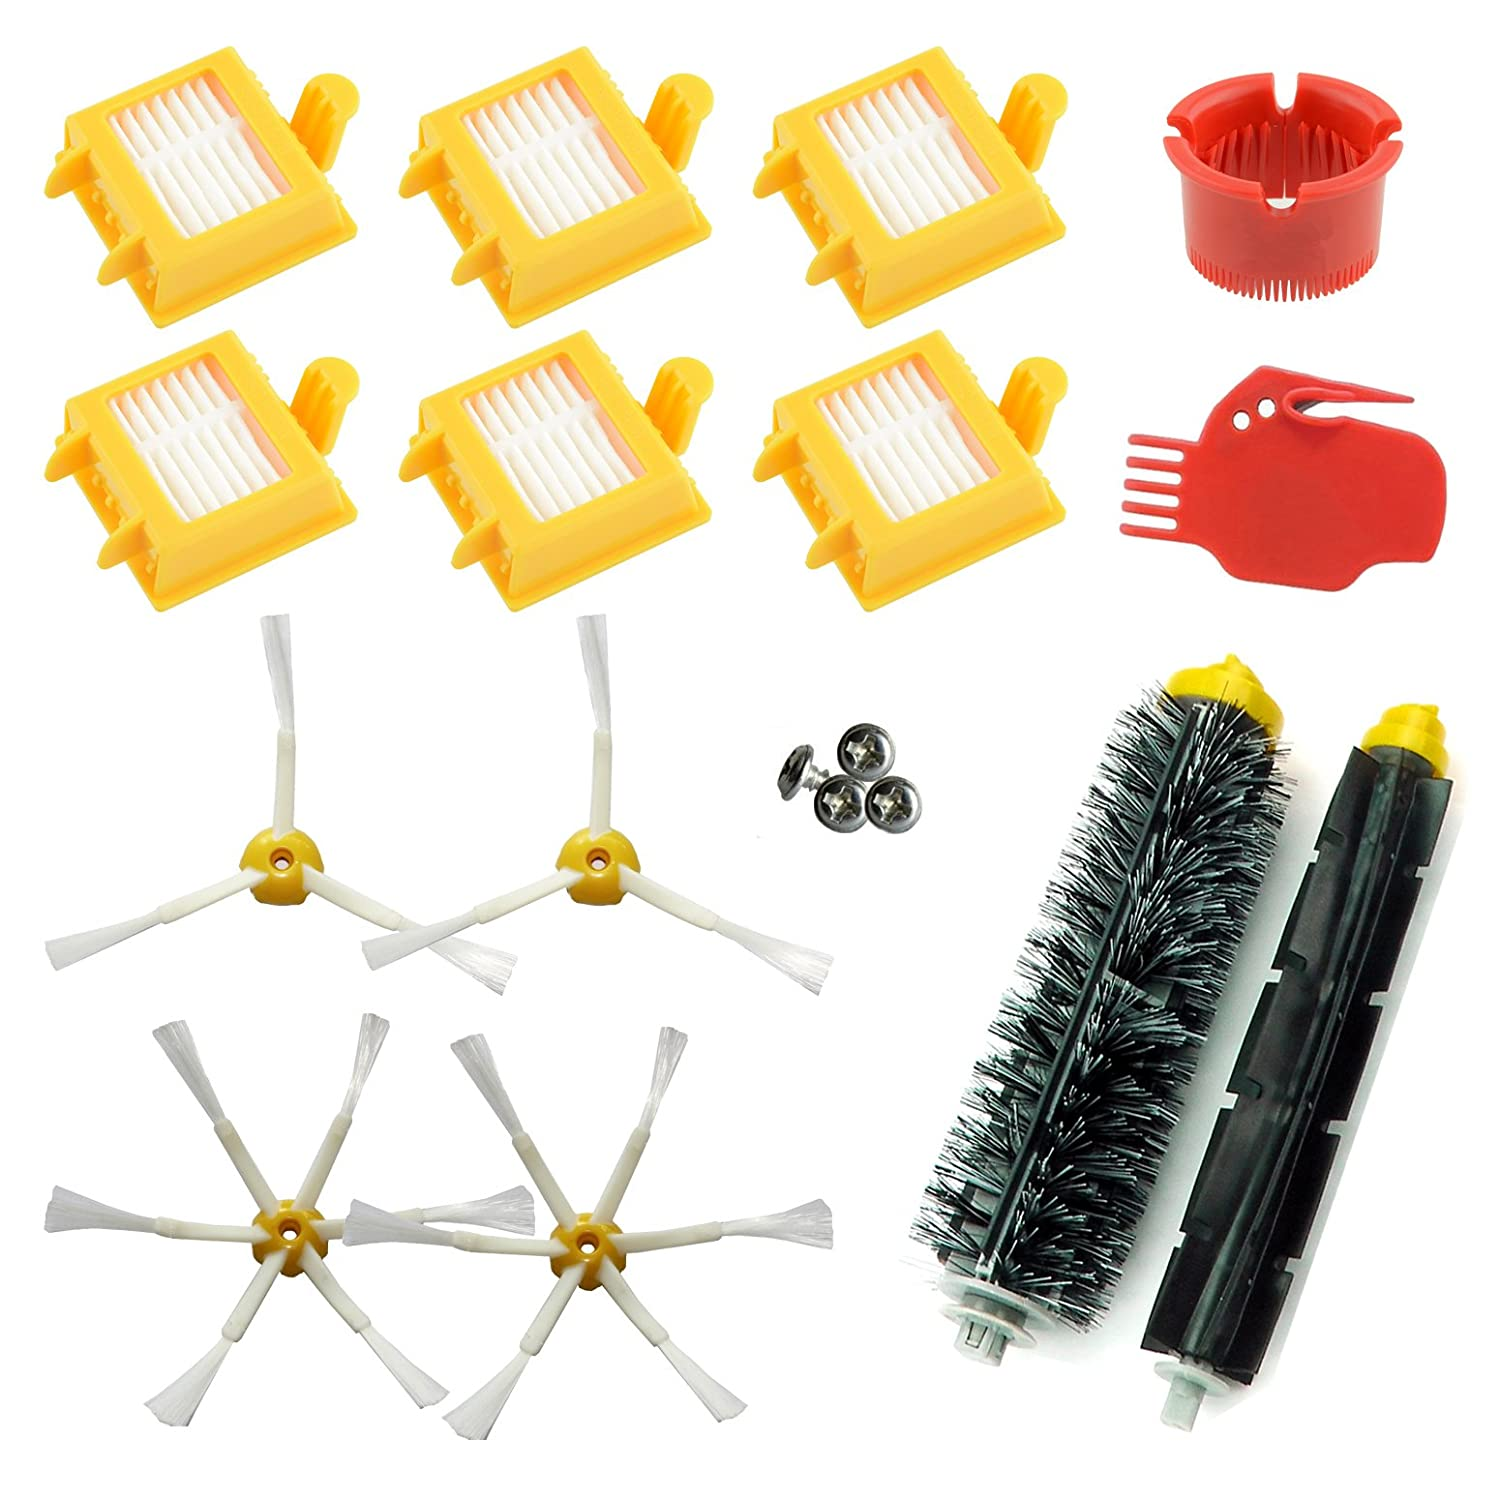 asp-robot ® Spare Parts Roomba 700 Series 760 765 770 772 775 776 776p 780 782 785 786. HEPA Filter, Side Brush, Roller Central and Accessories. Pack Replacement. Kit Spare New (6 x FILTERS, 2 X 3 Blades, 2 X Brushes Brushes Brushes Pack of 6 Blades, 1 x